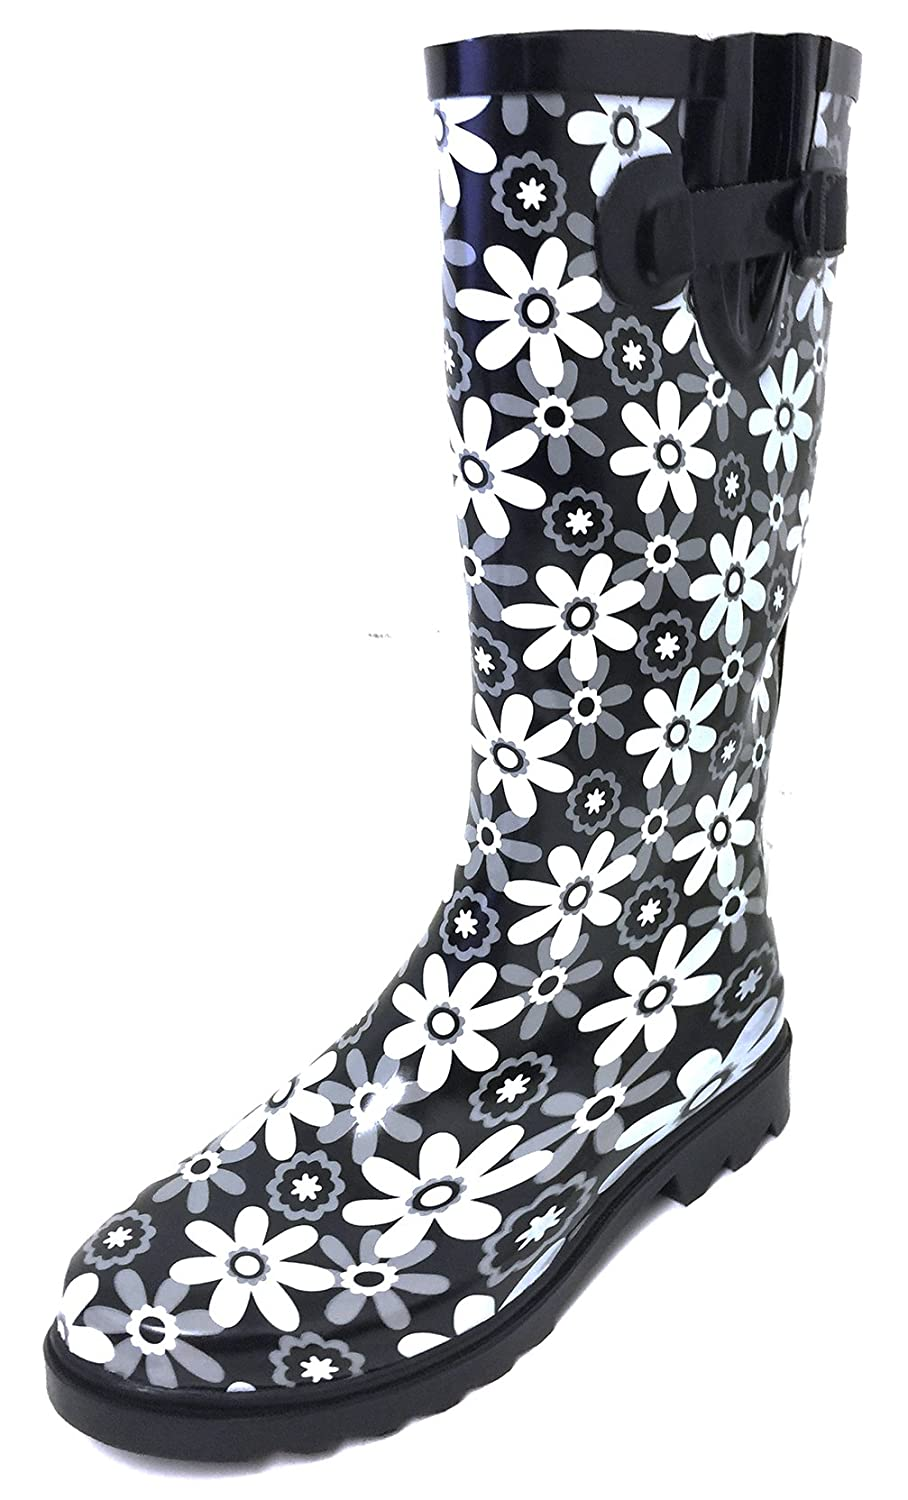 Black White Flowers G4U Women's Rain Boots Multiple Styles color Mid Calf Wellies Buckle Fashion Rubber Knee High Snow shoes